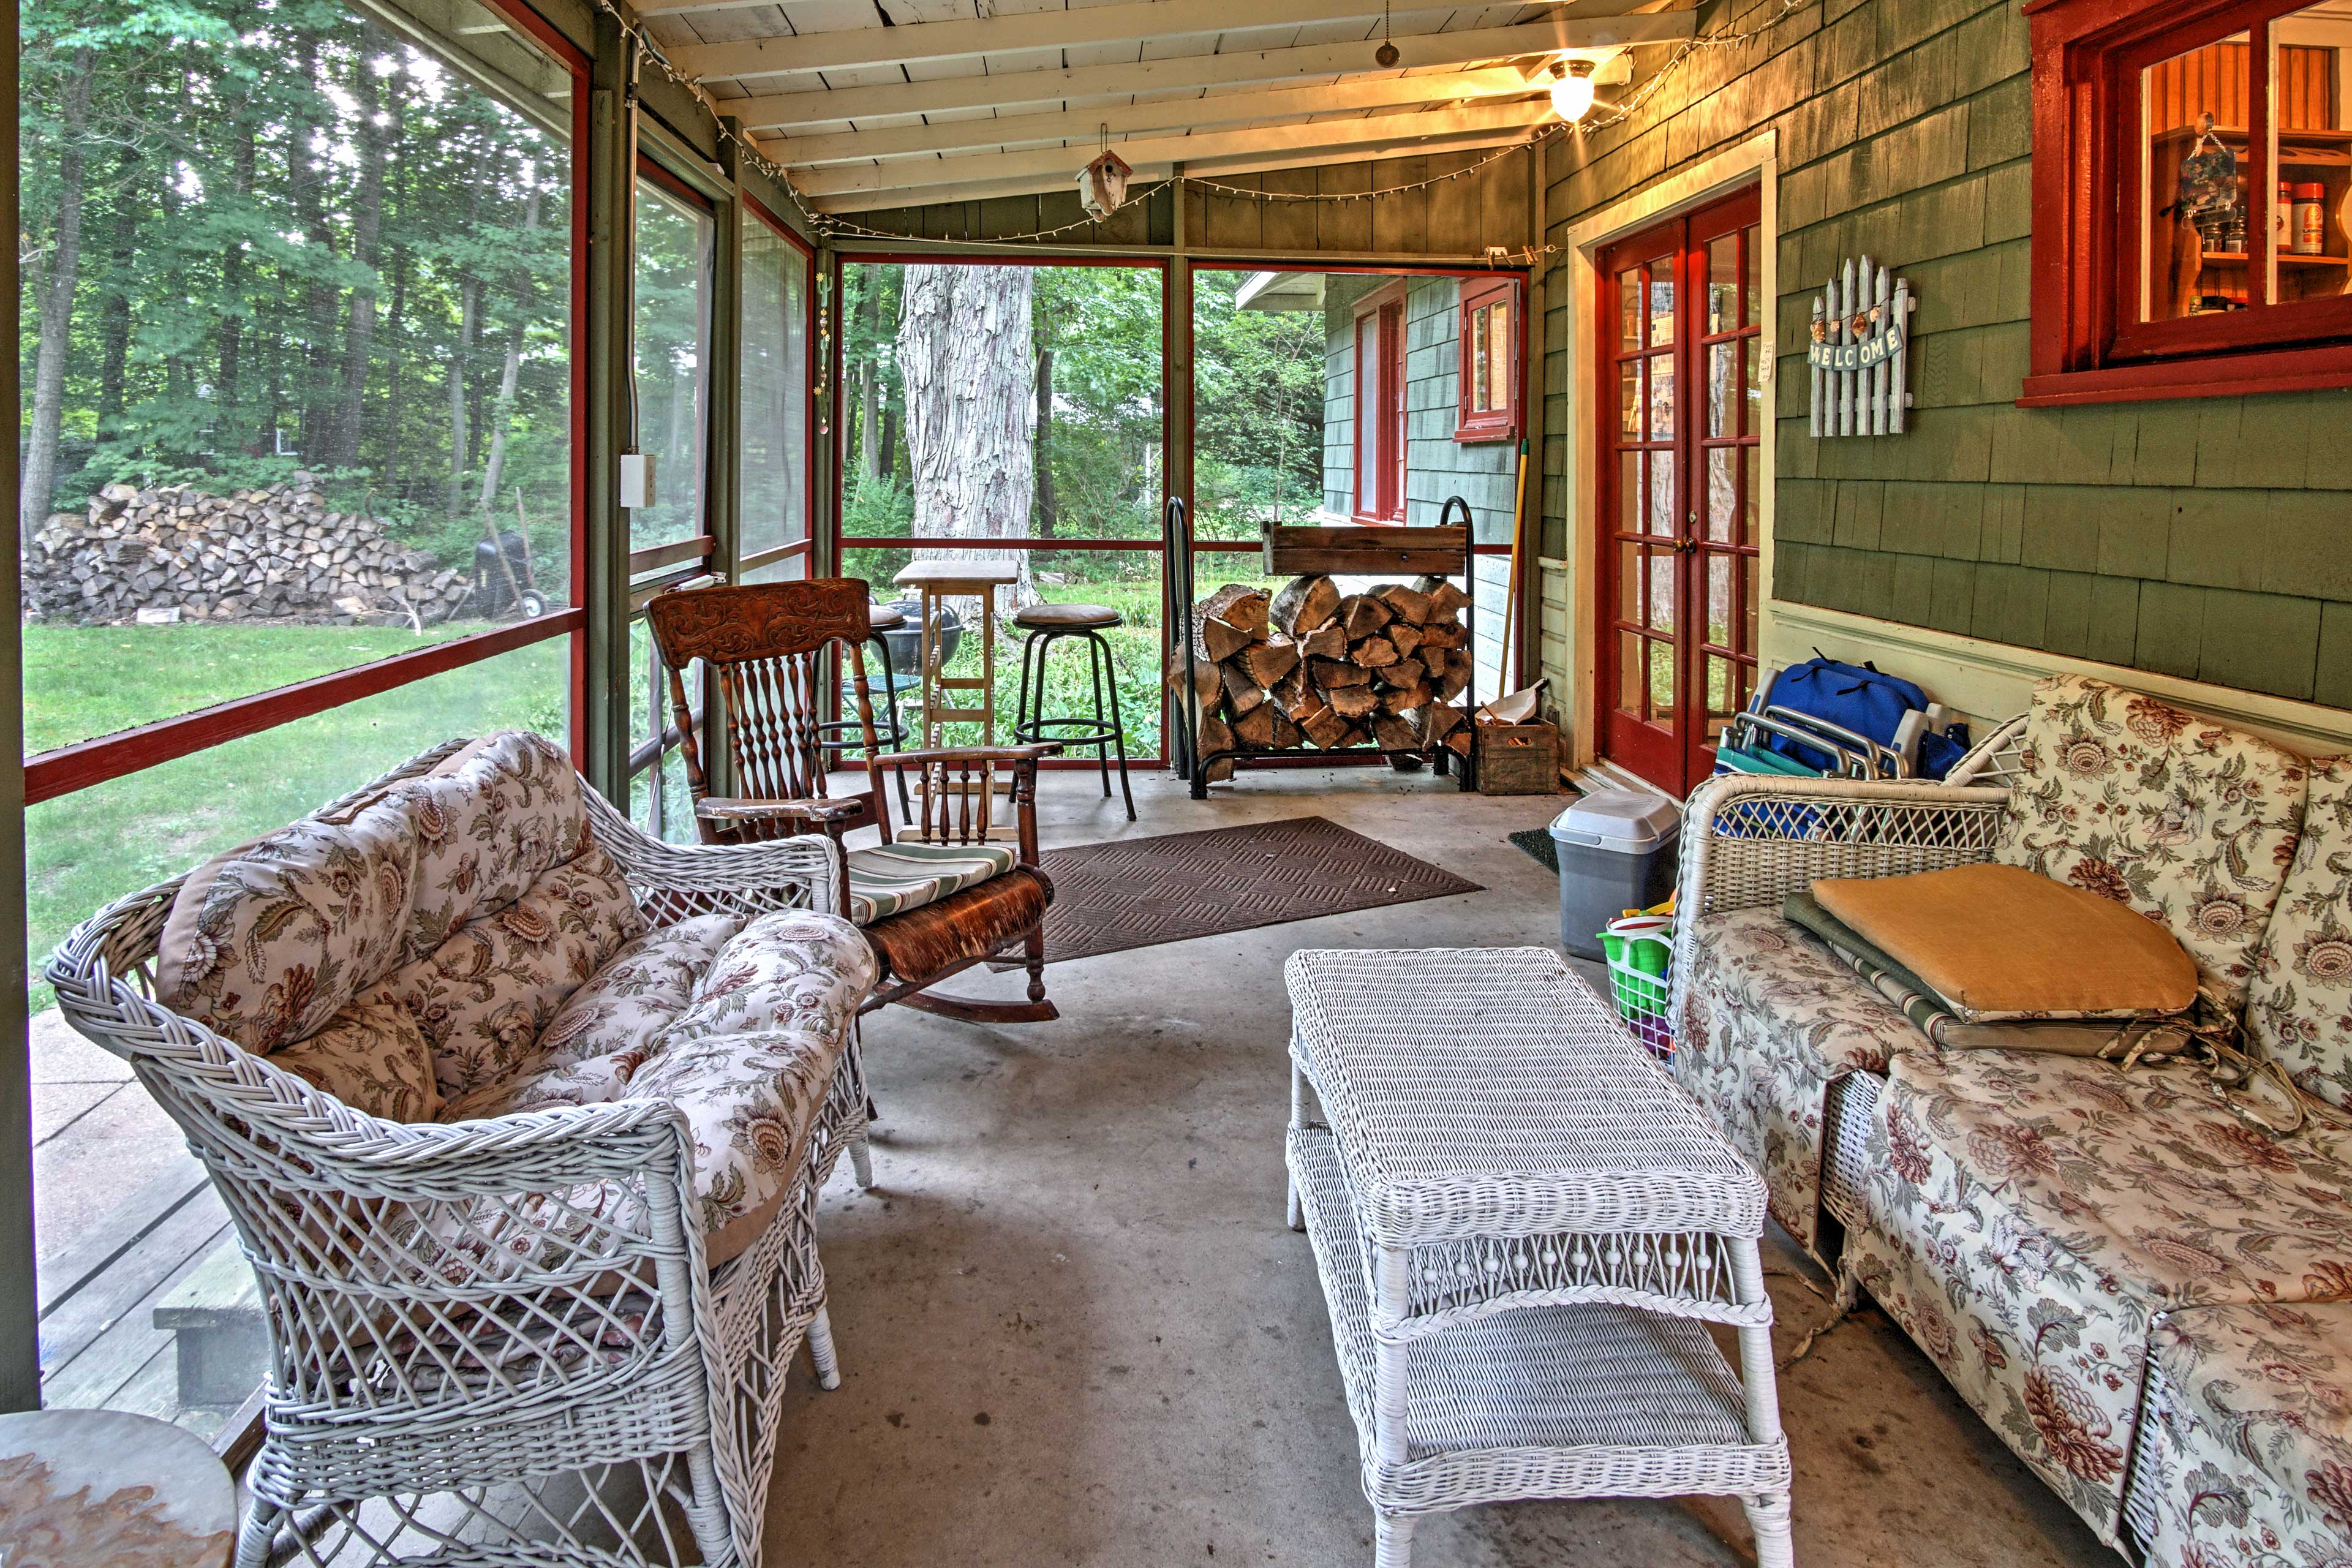 Early risers will look forward to sipping coffee outside on the screened-in porch.